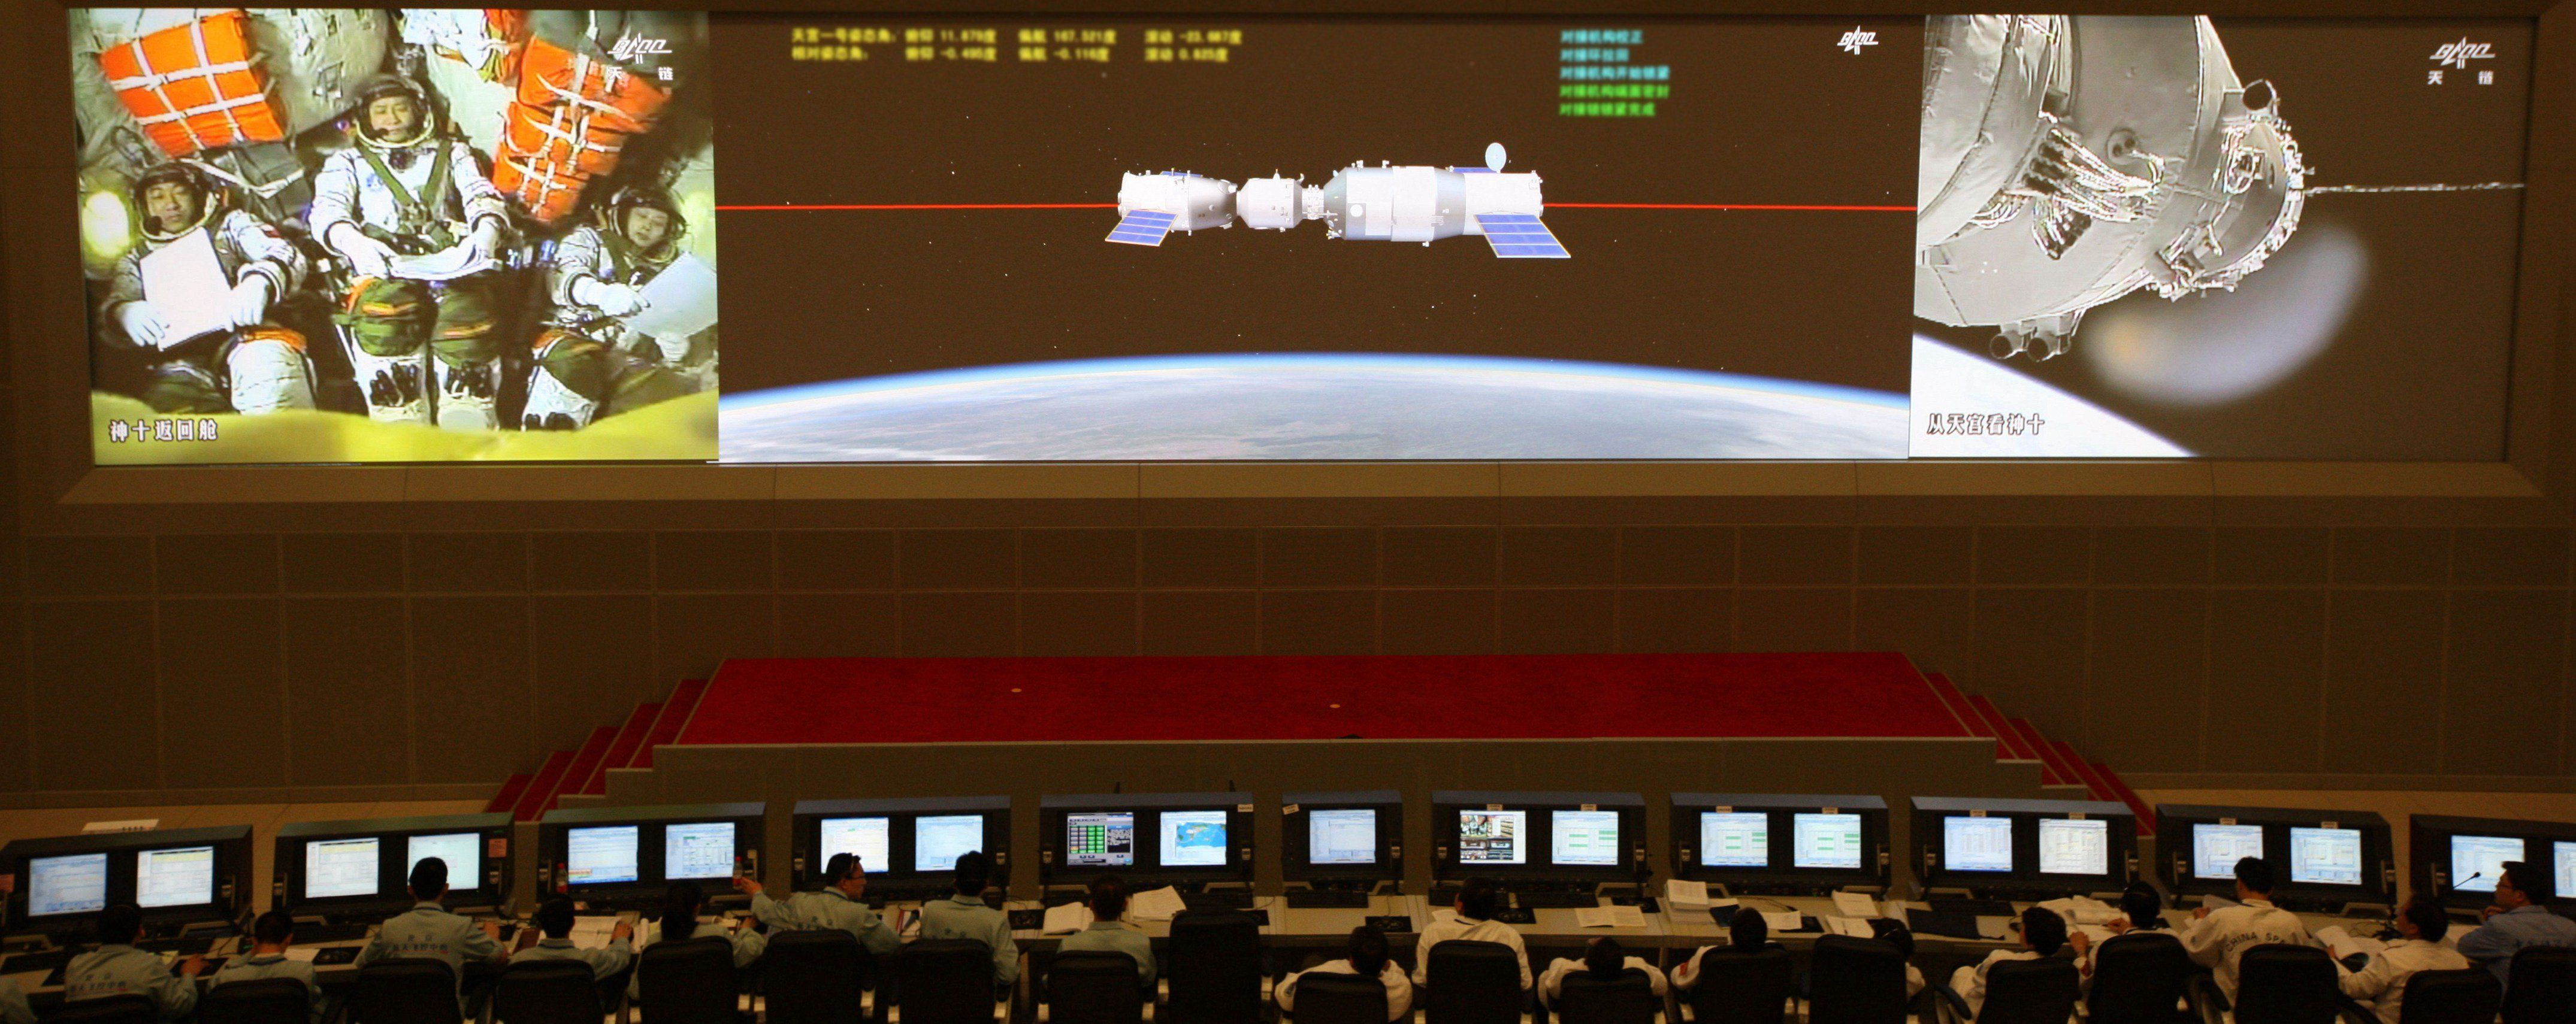 The Tiangong-1 re-entered Earth's atmosphere on Sunday evening. The Chinese said they lost contact with...